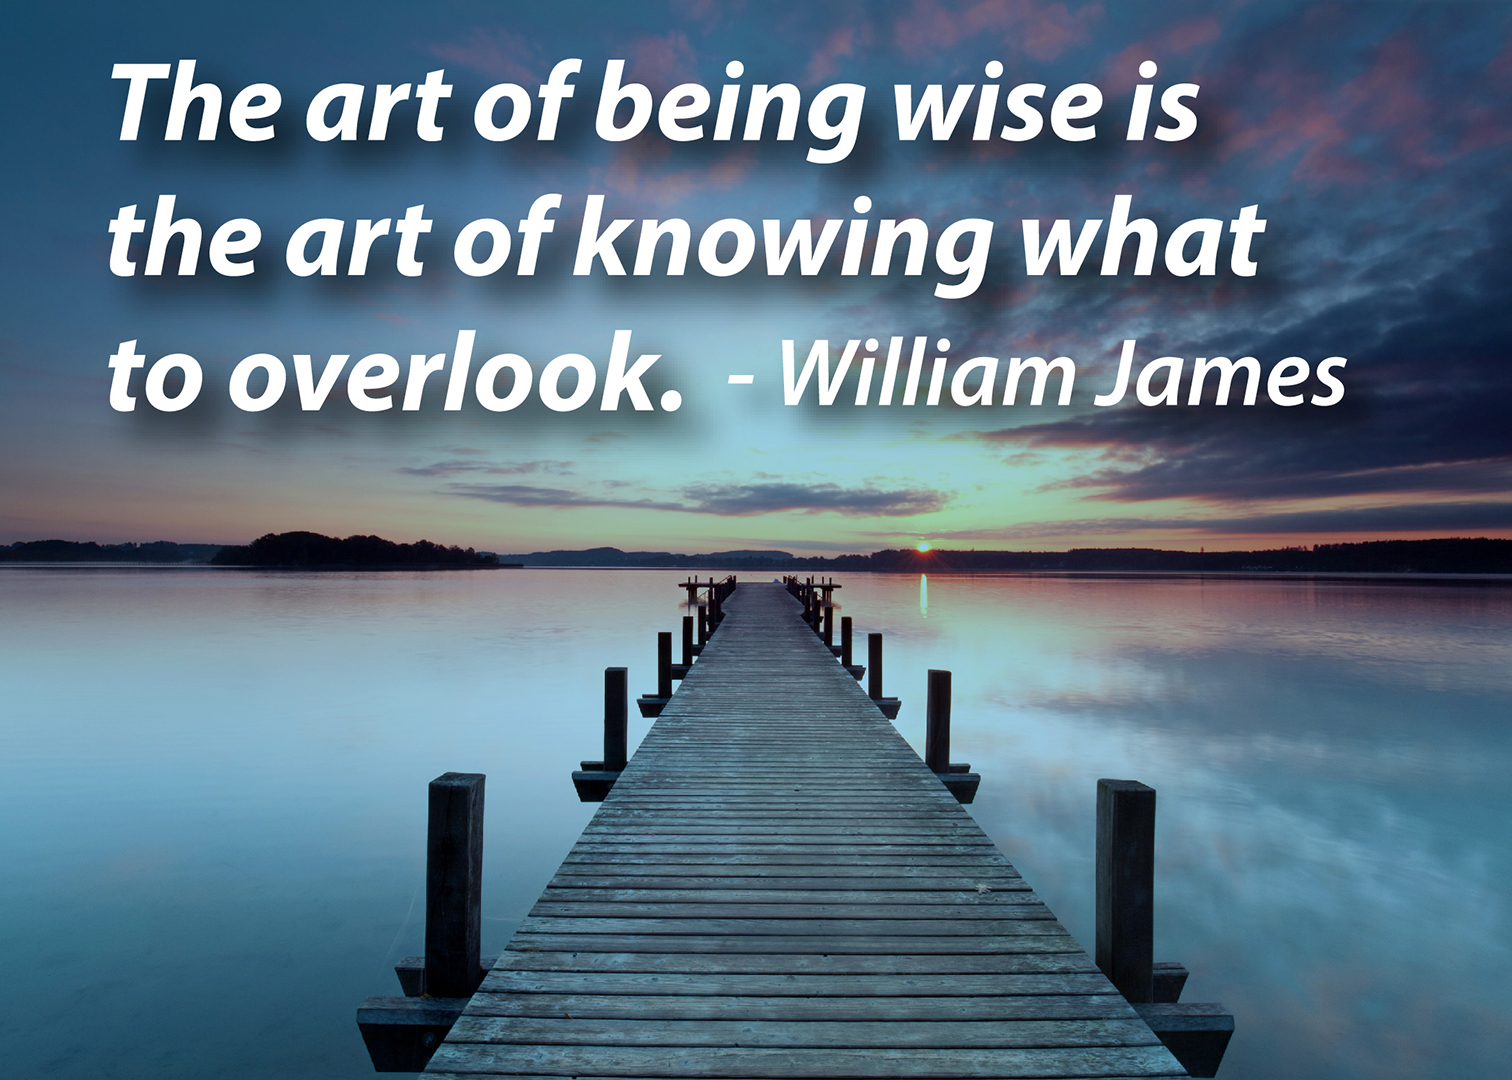 Art of being wise-01 (resize).jpg